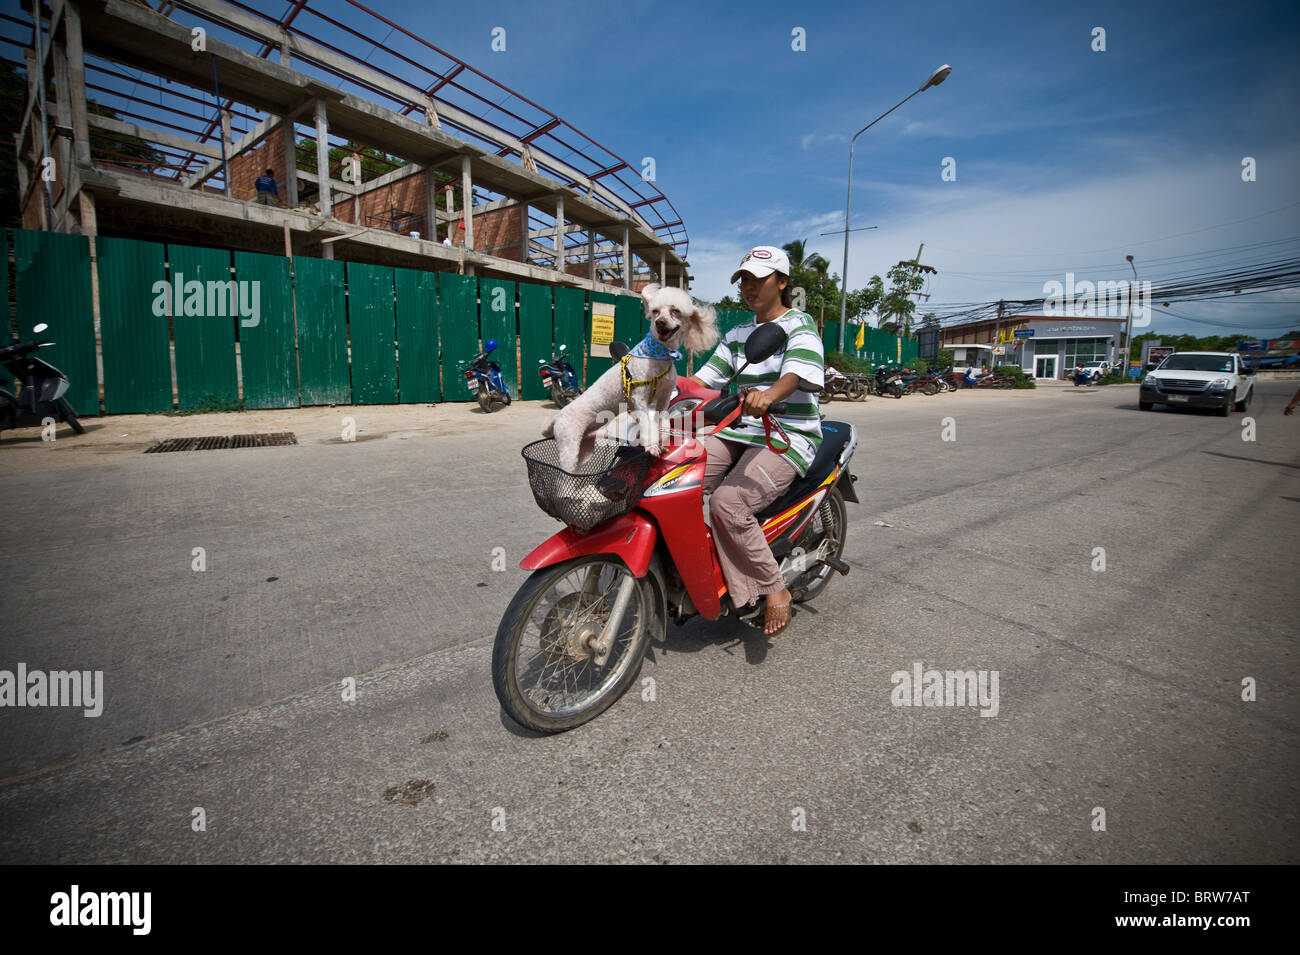 Woman on a red moped, carries her pet dog in the in the front shopping basket. - Stock Image